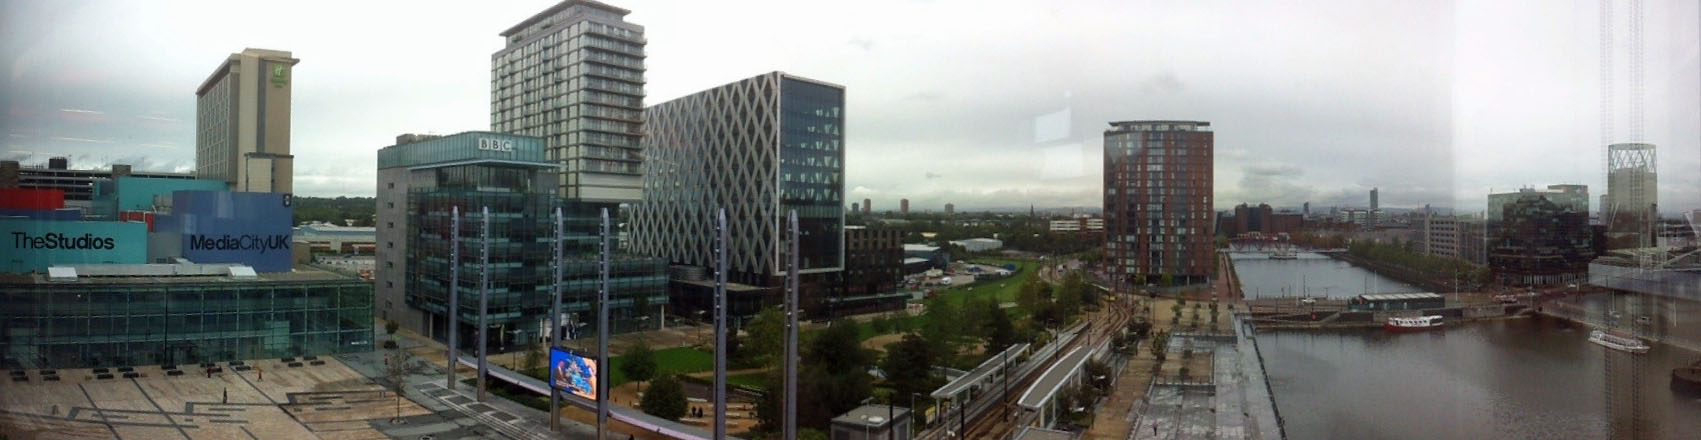 Imposante Anlage: MediaCity Manchester